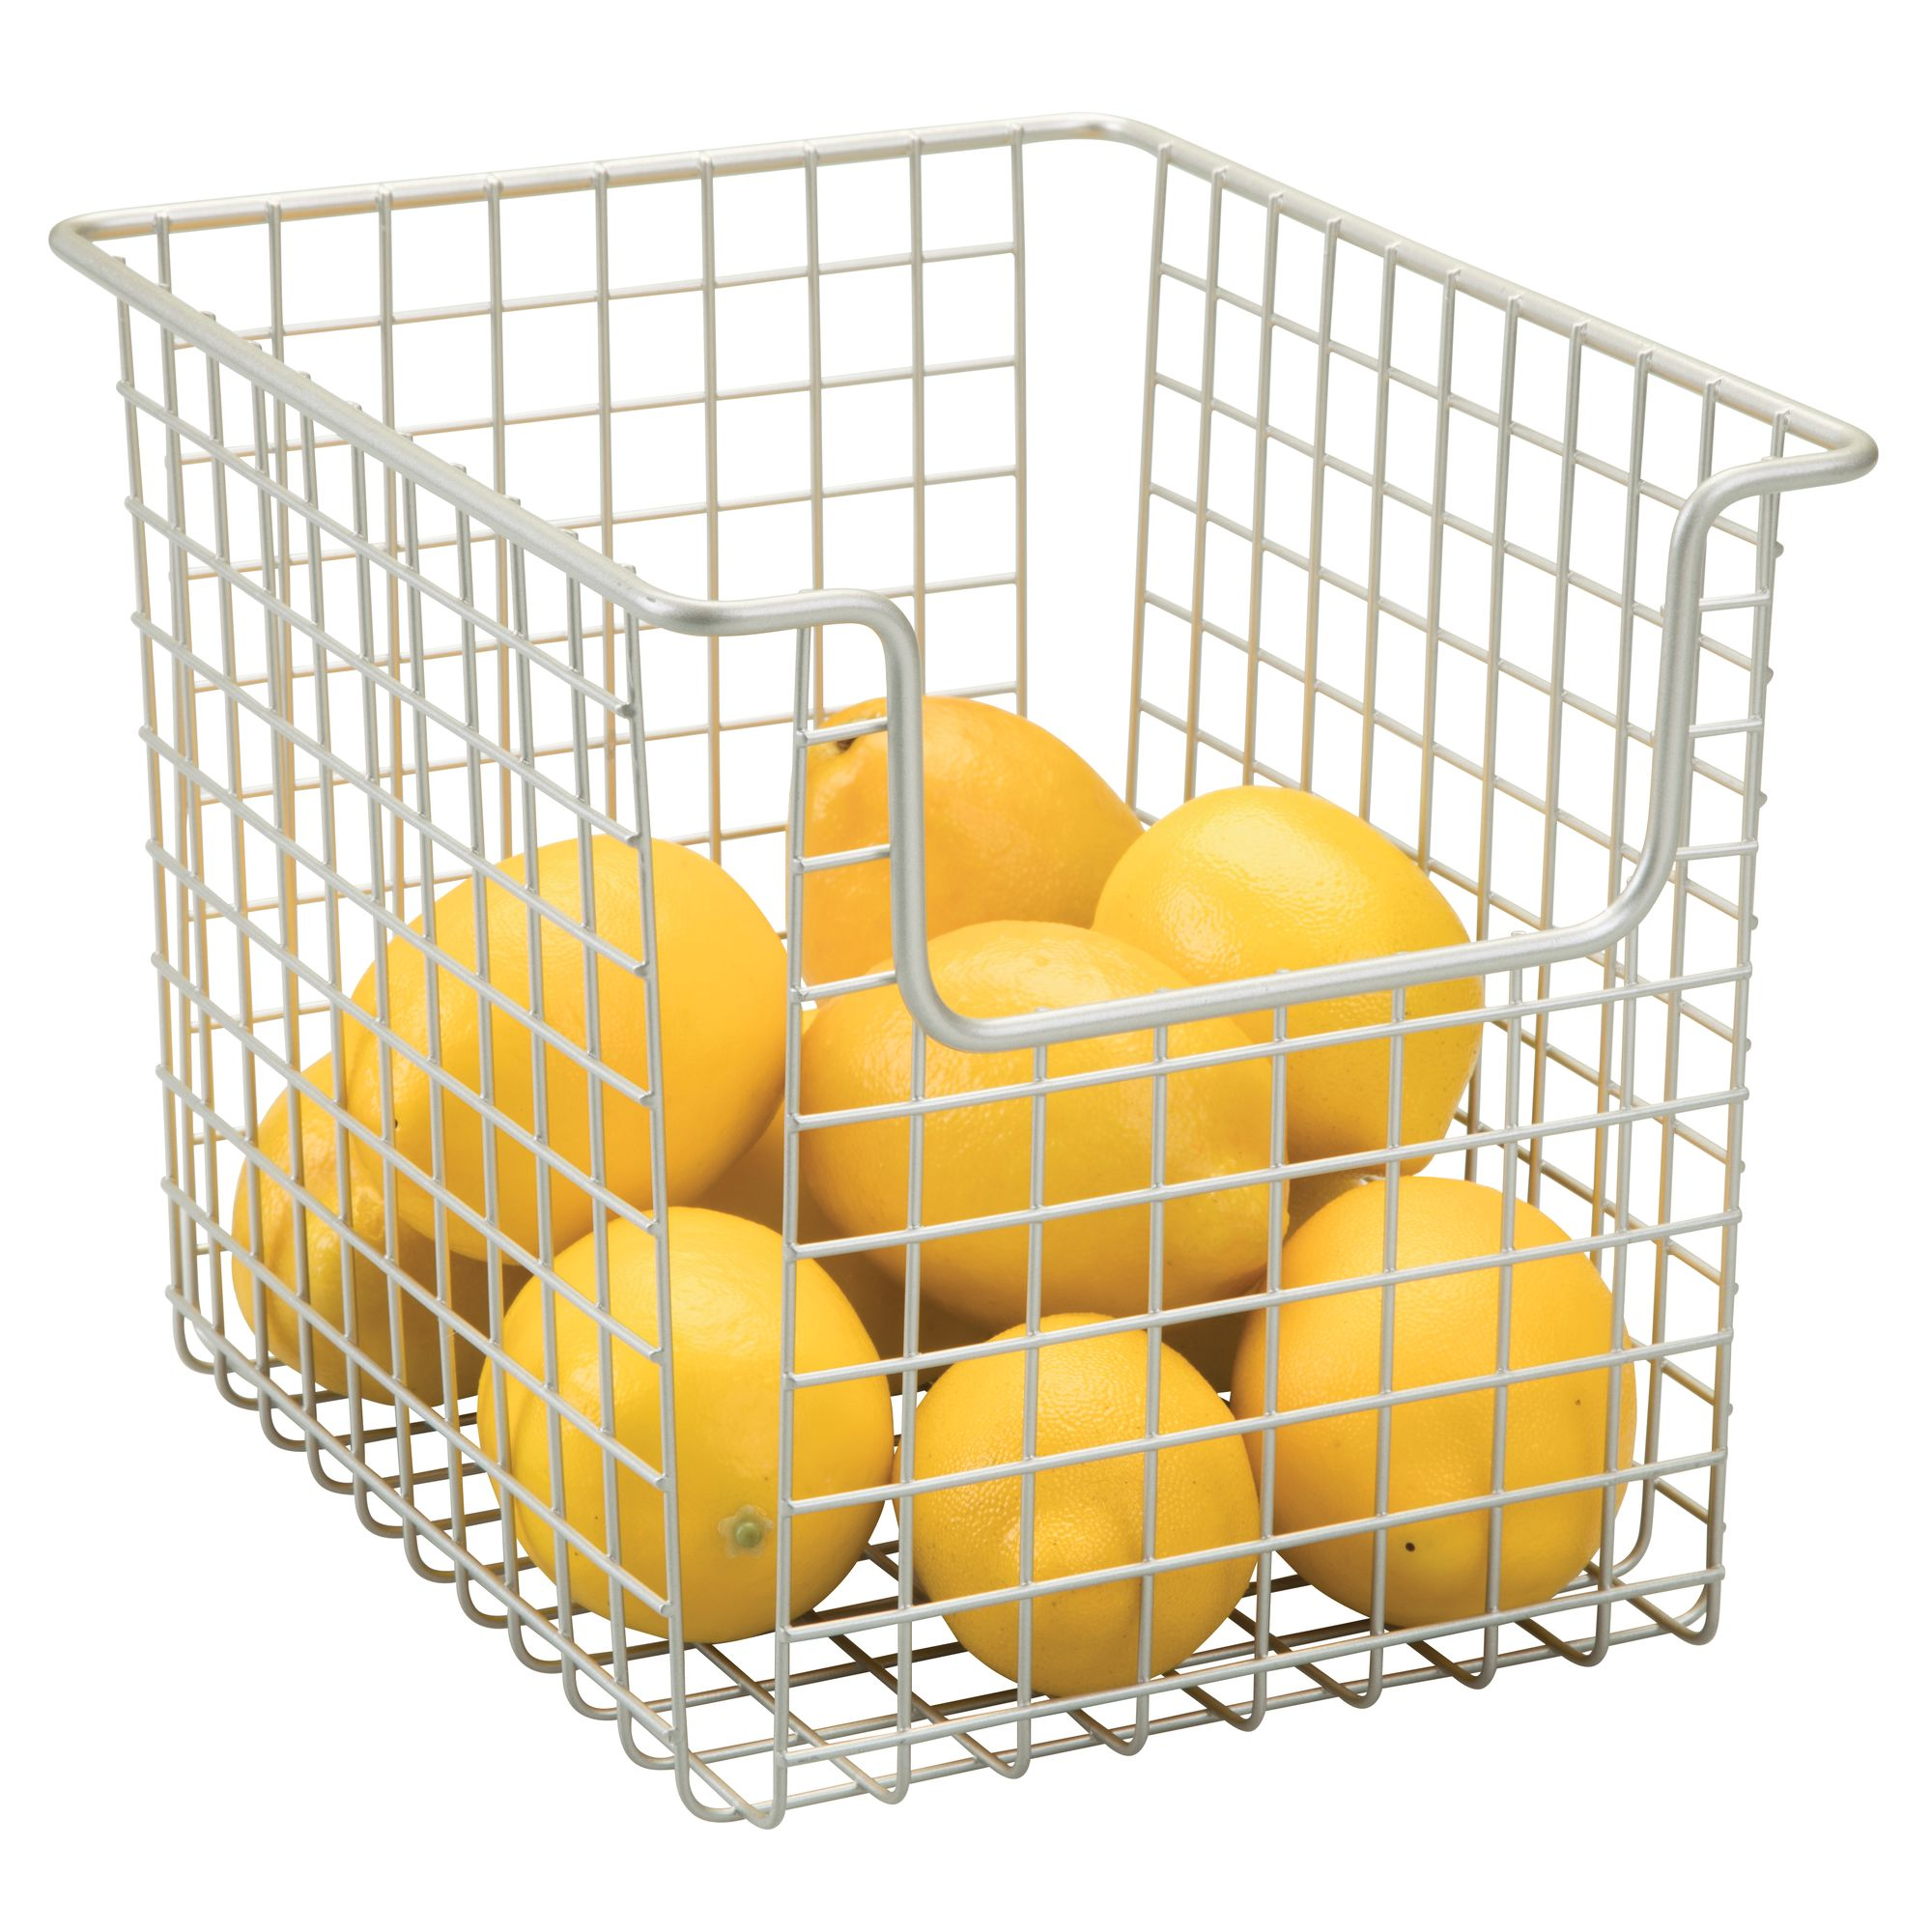 InterDesign Classico Open Wire Small Storage Basket, Matte Satin